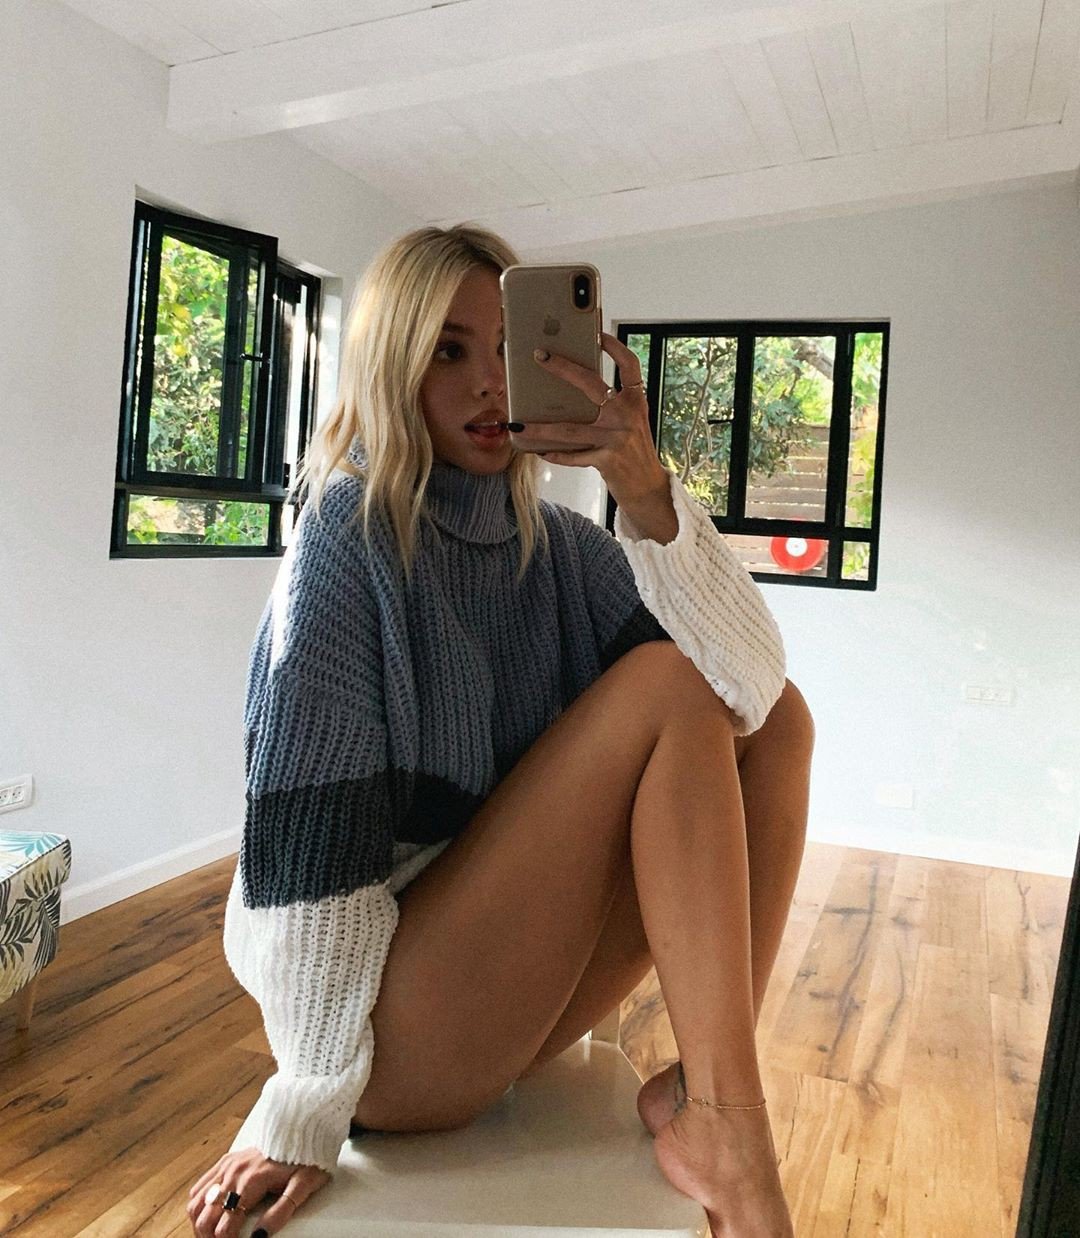 Maria Domark hot thighs, fine legs, blond hairstyle